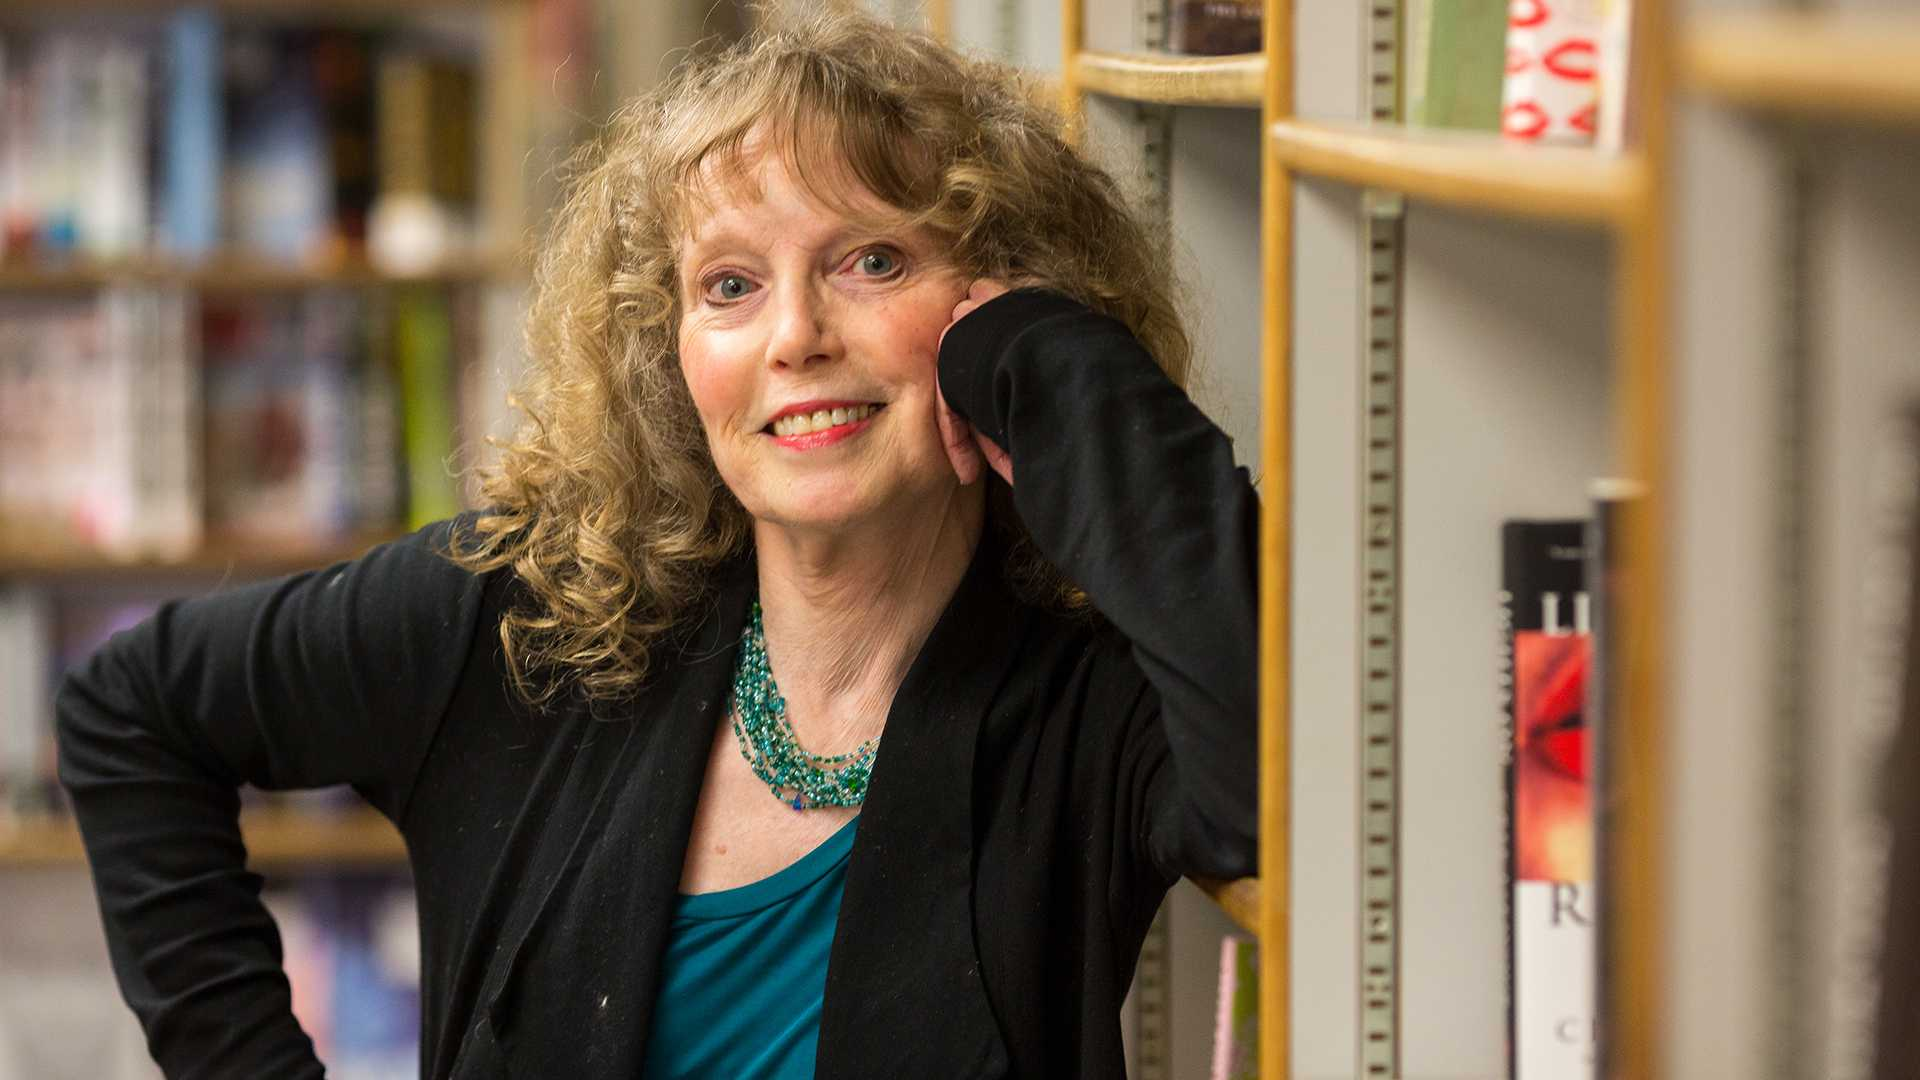 """Patricia Foster, an author and professor at the University of Iowa's Department of English, reads from her latest novel """"The Girl from Soldier Creek"""" at Prairie Lights bookstore in Iowa City on Wednesday, Feb. 28, 2018. (David Harmantas/The Daily Iowan)"""